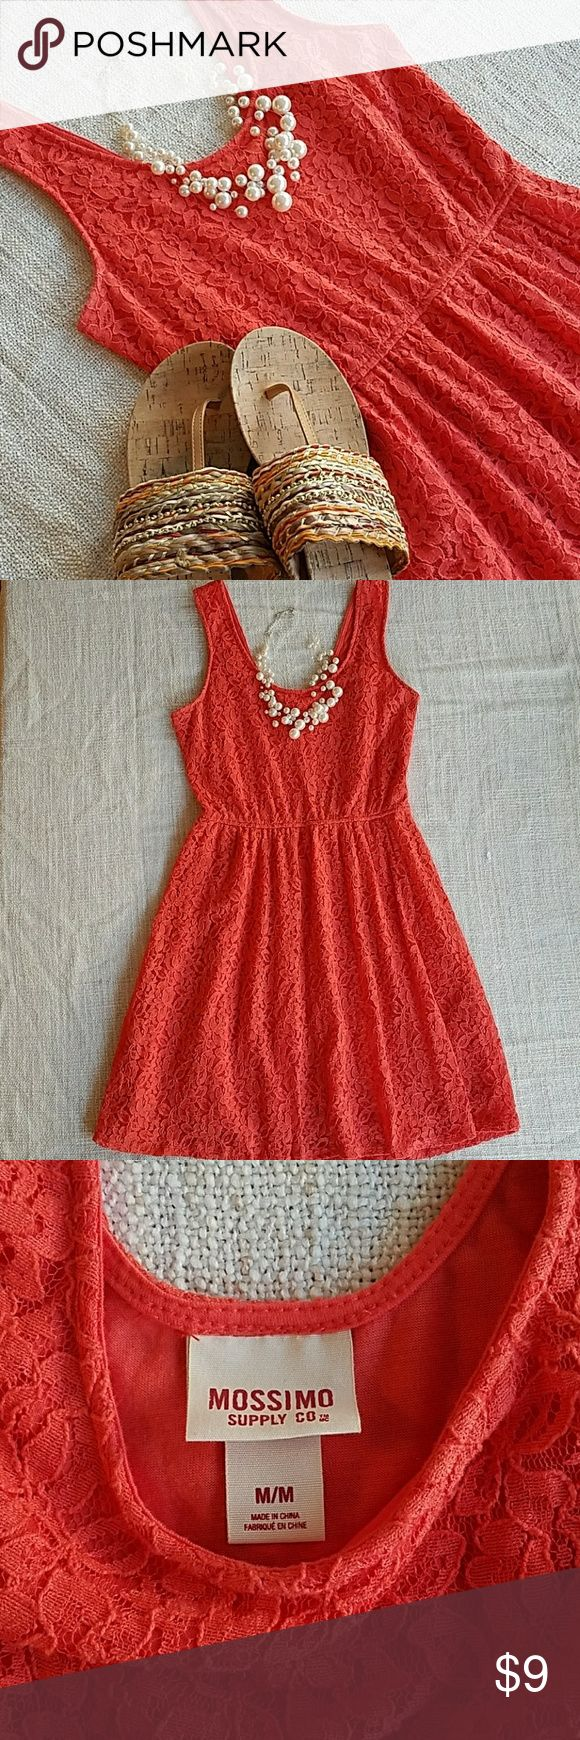 """2FOR$9🌼Coral Lace Dress Mossimo coral lace dress, lined, with a side zipper.  Light wear and one small hole, the lace pattern makes it so unnoticeable I almost couldn't find it to take a picture. Overall in good used condition. :D  True color is closest to the last picture  *Necklace and shoes are only for stying*  No trades please 💕 Measurements laying flat: chest """"15, length """"32  2FOR$9 SALE🌼Bundle any 2 items priced $5-$9 and submit an offer for $9! Mossimo Supply Co Dresses"""